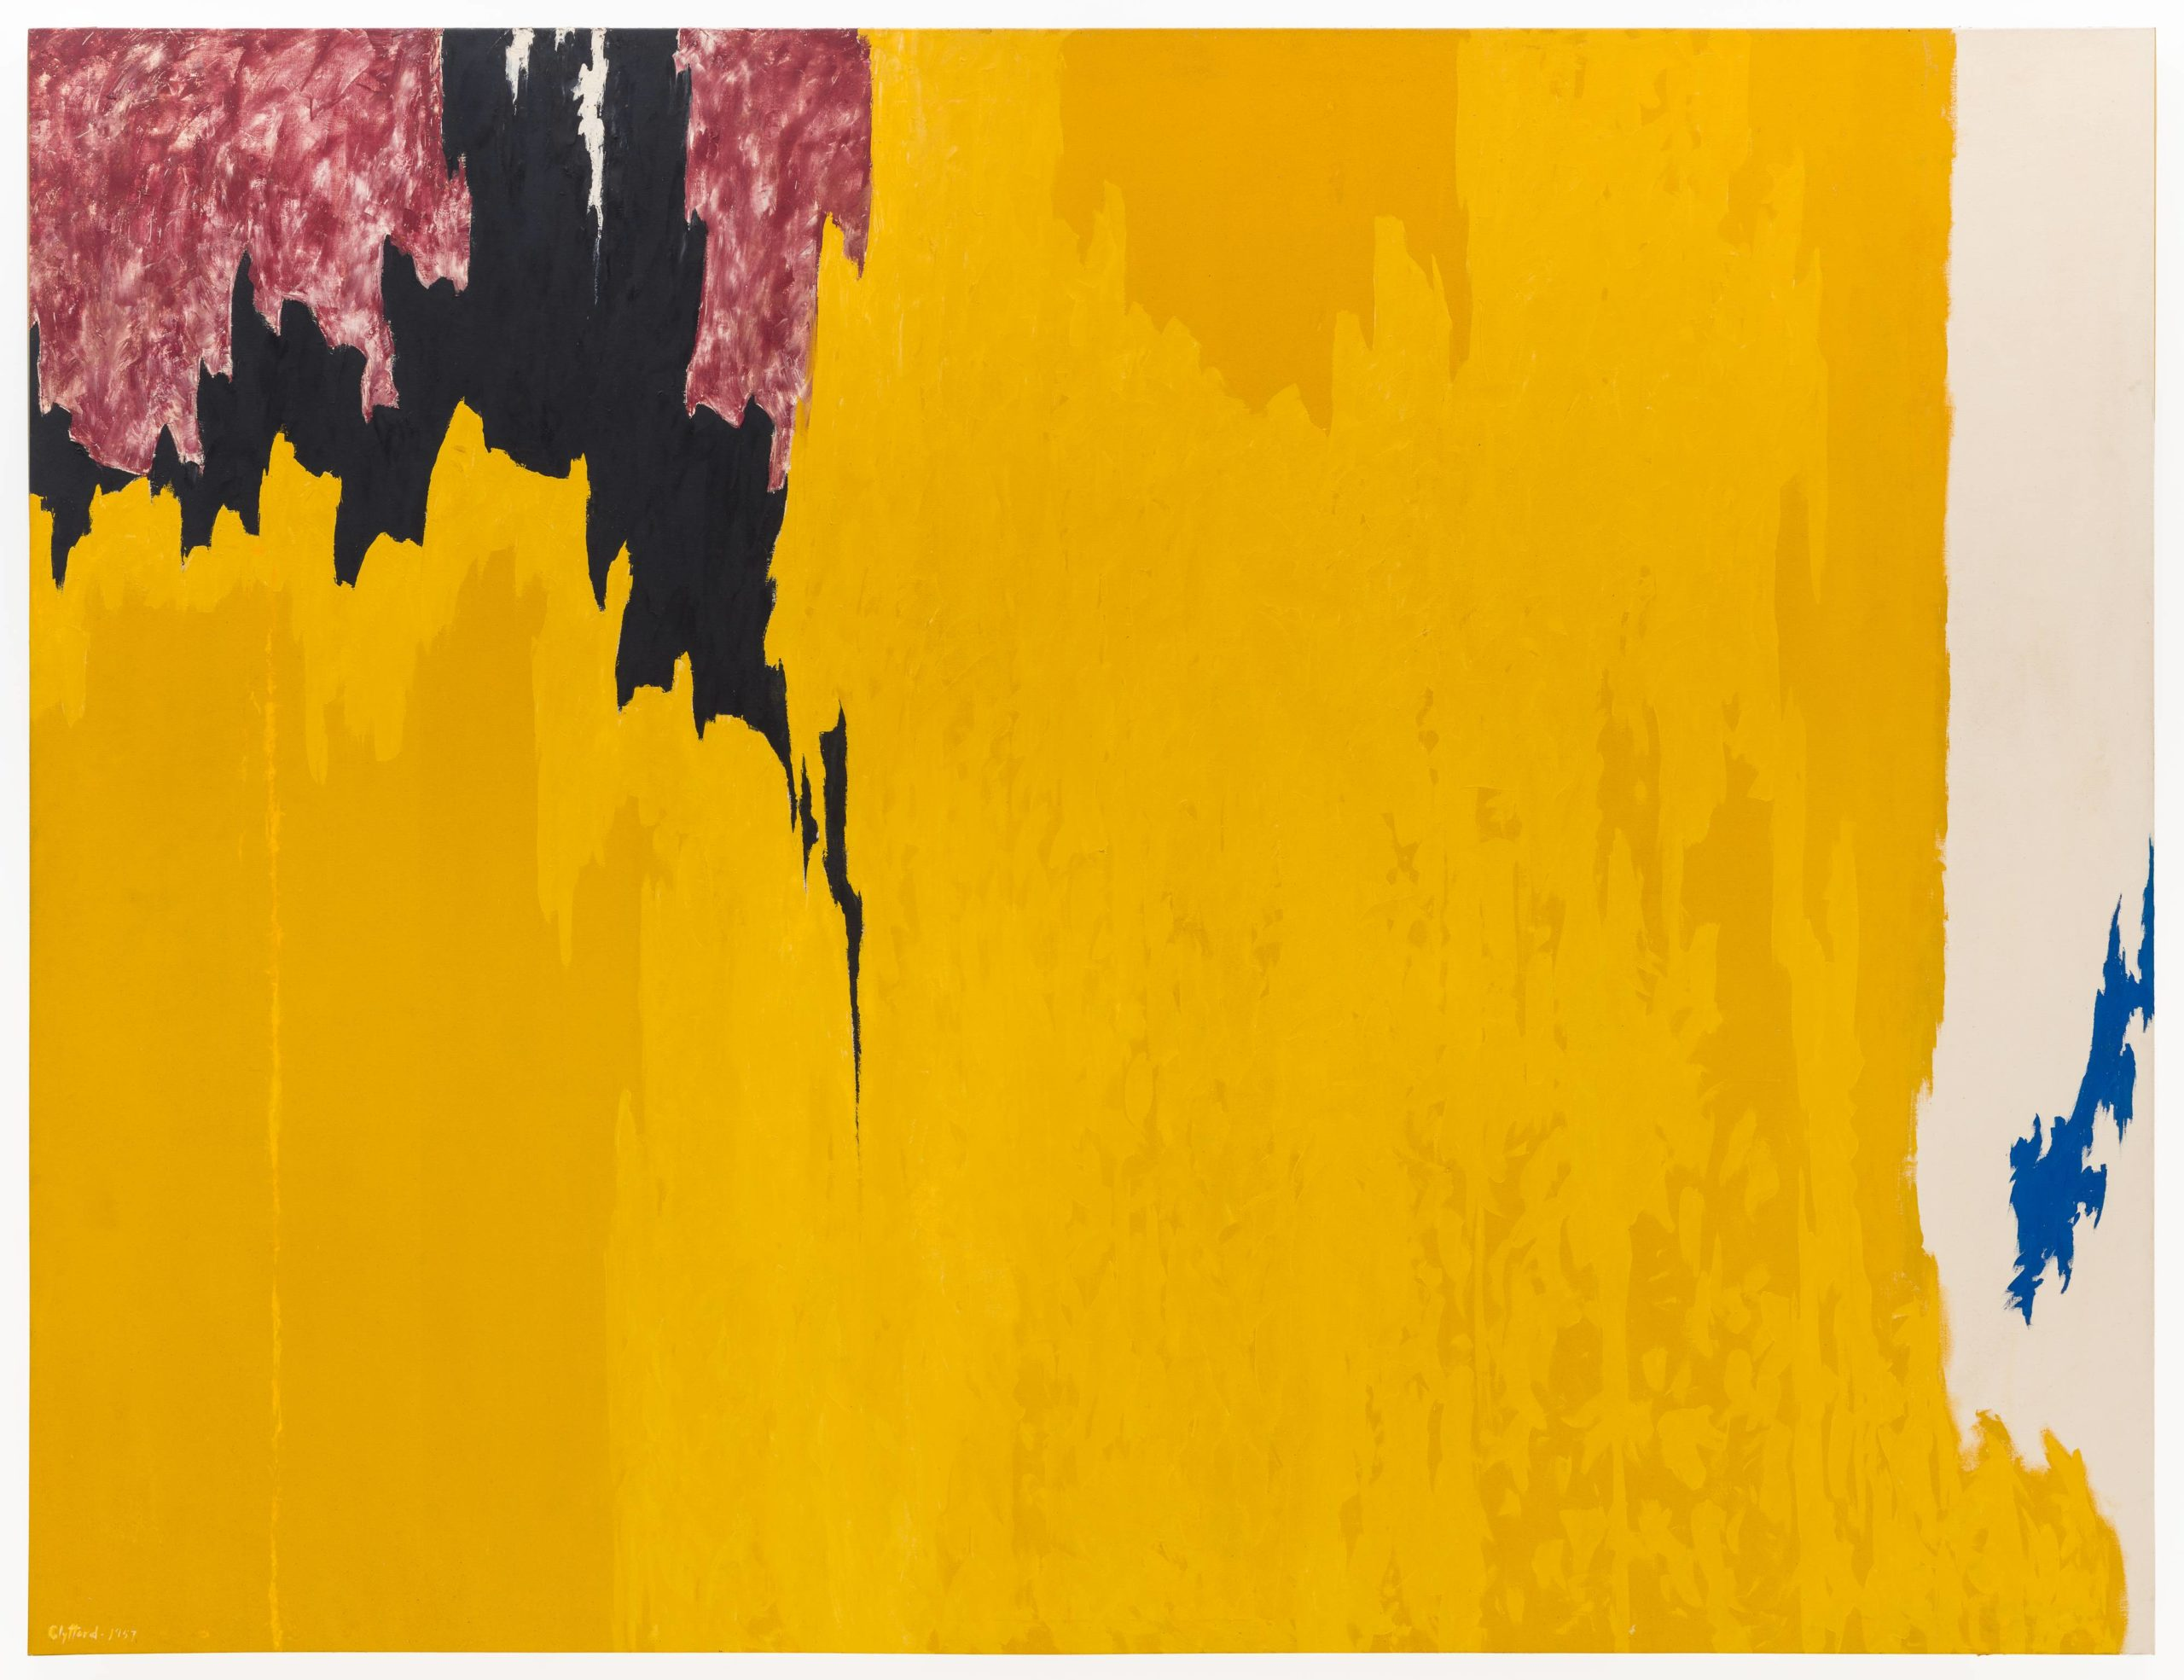 This vast oil painting by Clyfford Still measures nine and a half feet high by more than twelve feet wide. It plunges the viewer into a vast, radiant field of yellow and gold, animated by the motion of brushwork within, that drenches the canvas from top to bottom for most of its breadth. There are two exceptions: in the upper left corner, jagged curtains of black and crimson descend on the yellow, making knife-like incursions into the radiant field as they move downward and closer to the center. And about a foot before the right edge of the painting, the continuous yellow and gold expanse gives way to a tall band of white, unprimed canvas, leaving only two small flame-like peaks near the lower right corner and, above them, an irregularly shaped royal blue life-form that climbs through the white breach to the canvas's edge.